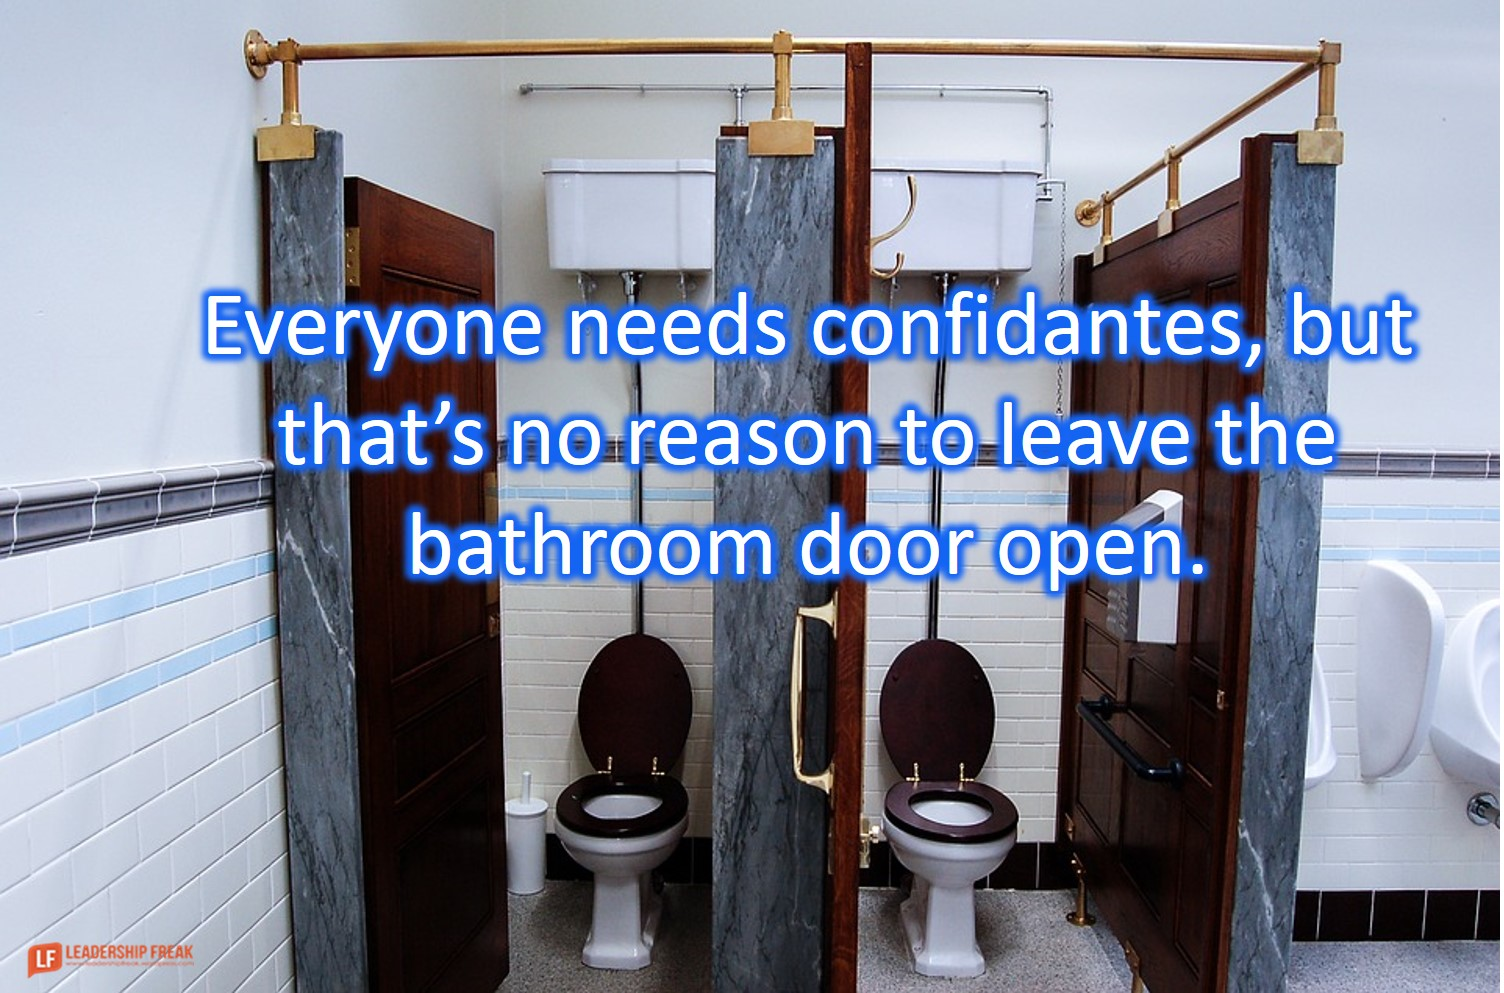 Restroom  Everyone needs confidantes, but that's no reason to leave the bathroom door open.